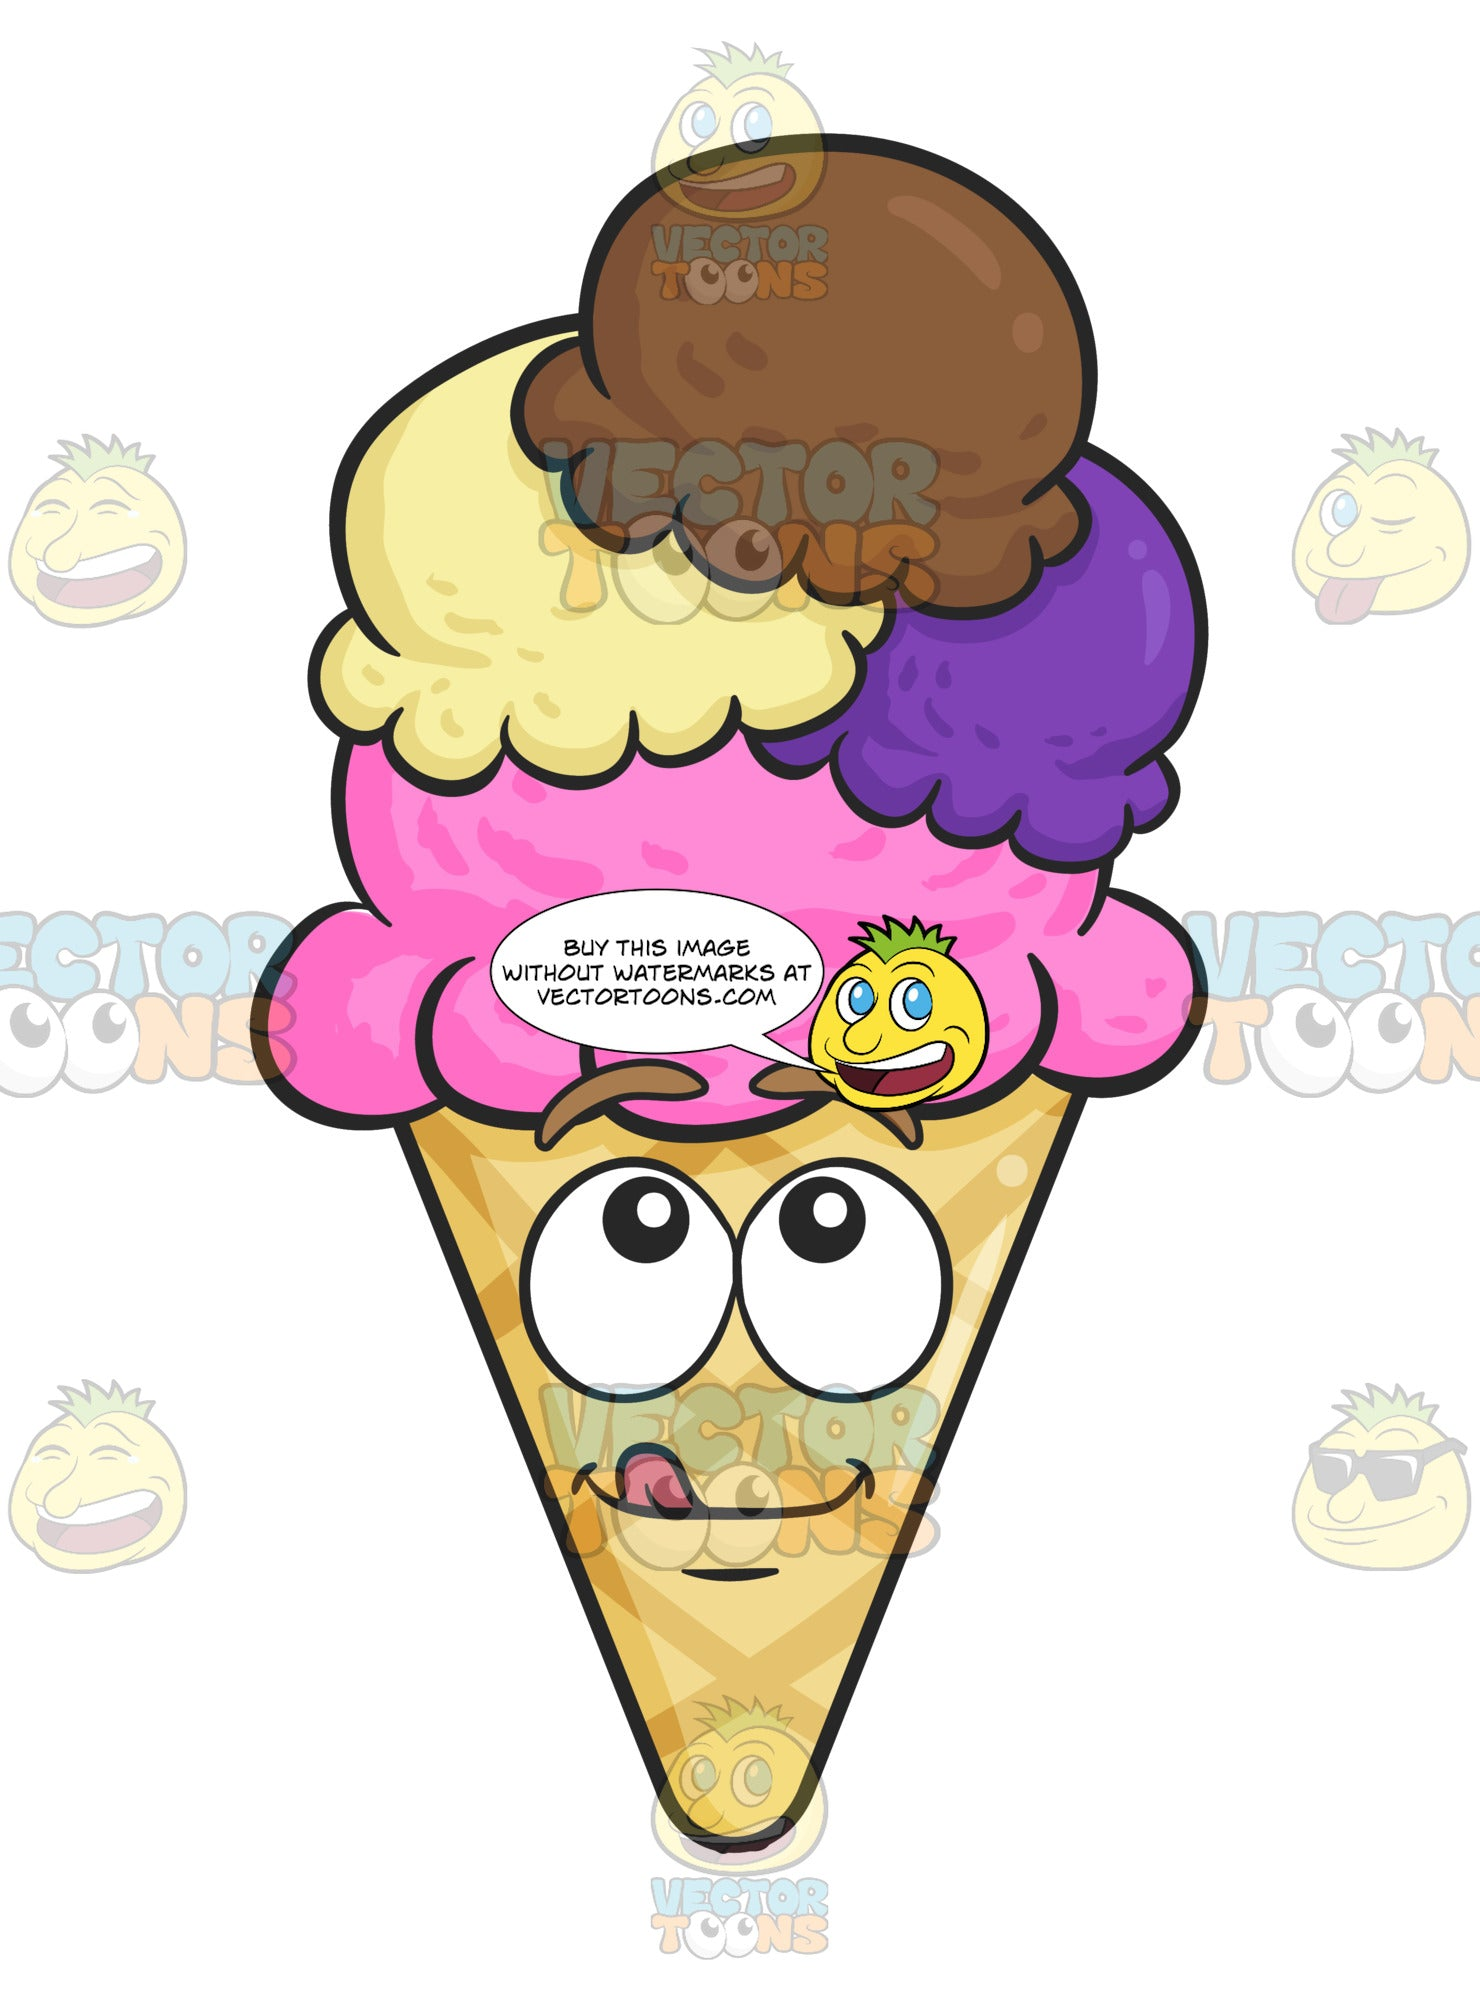 Scoops Of Ice Cream On Cone With Delighted Look On Face